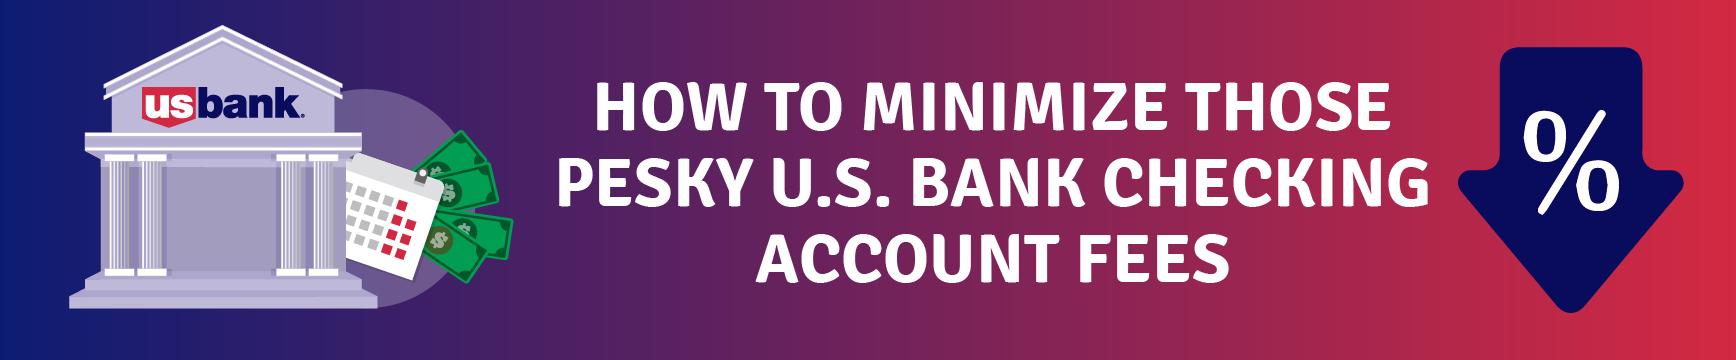 How to minimize those pesky U.S. Bank Checking account fees